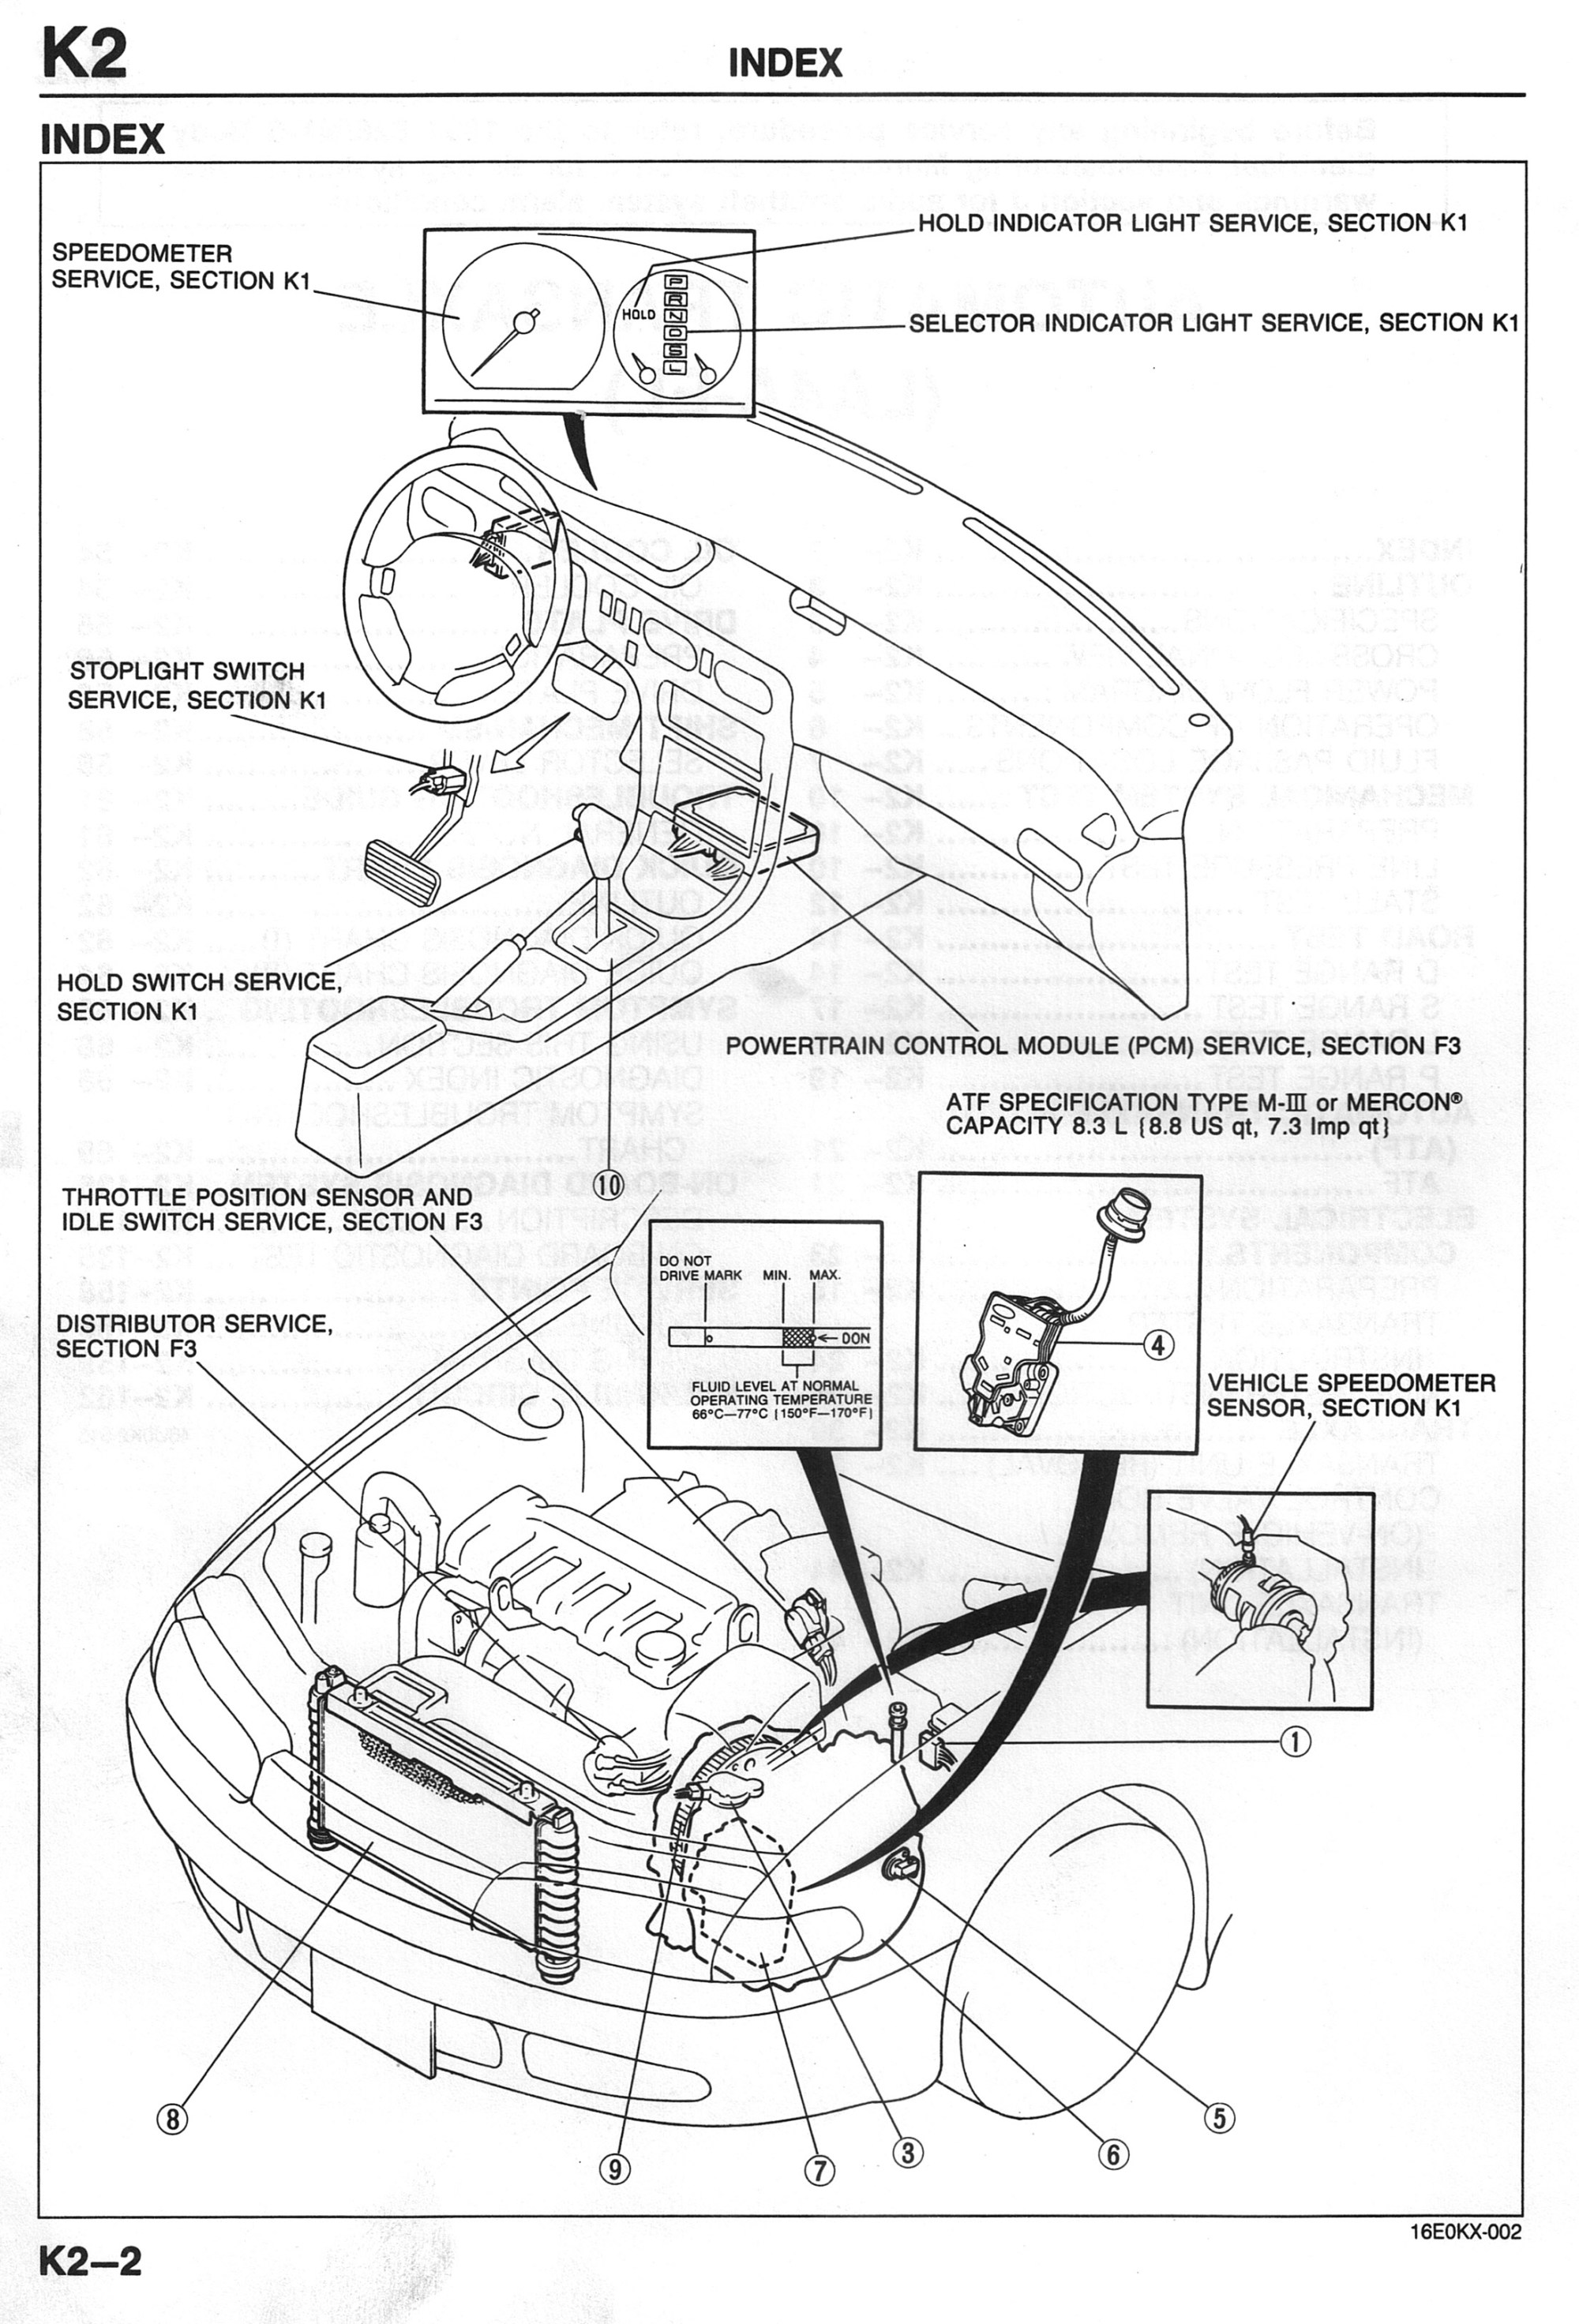 hight resolution of where is the ecu on the mazda 626 4cyl 1993 2002 2l 2002 mazda 626 engine diagram